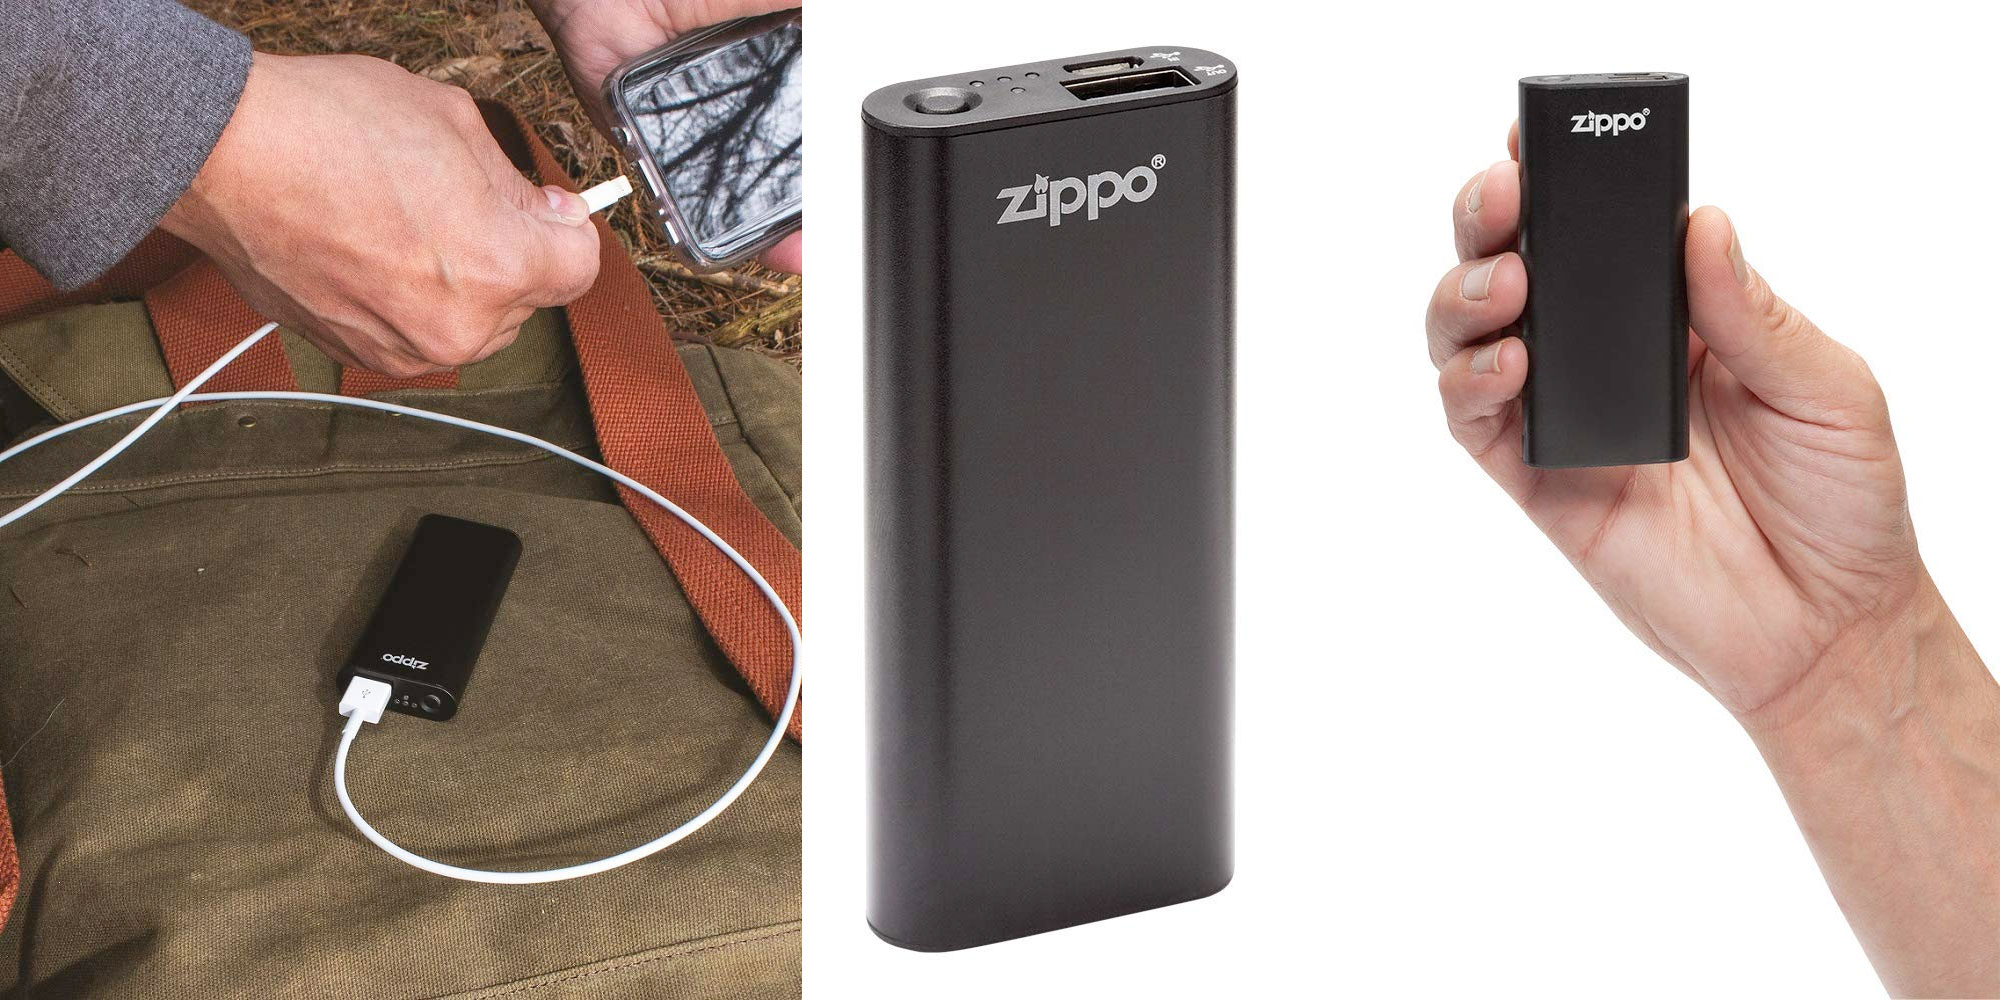 Zippo's rechargeable hand warmer is a must-have for cold weather at $18 shipped (Reg. $25)